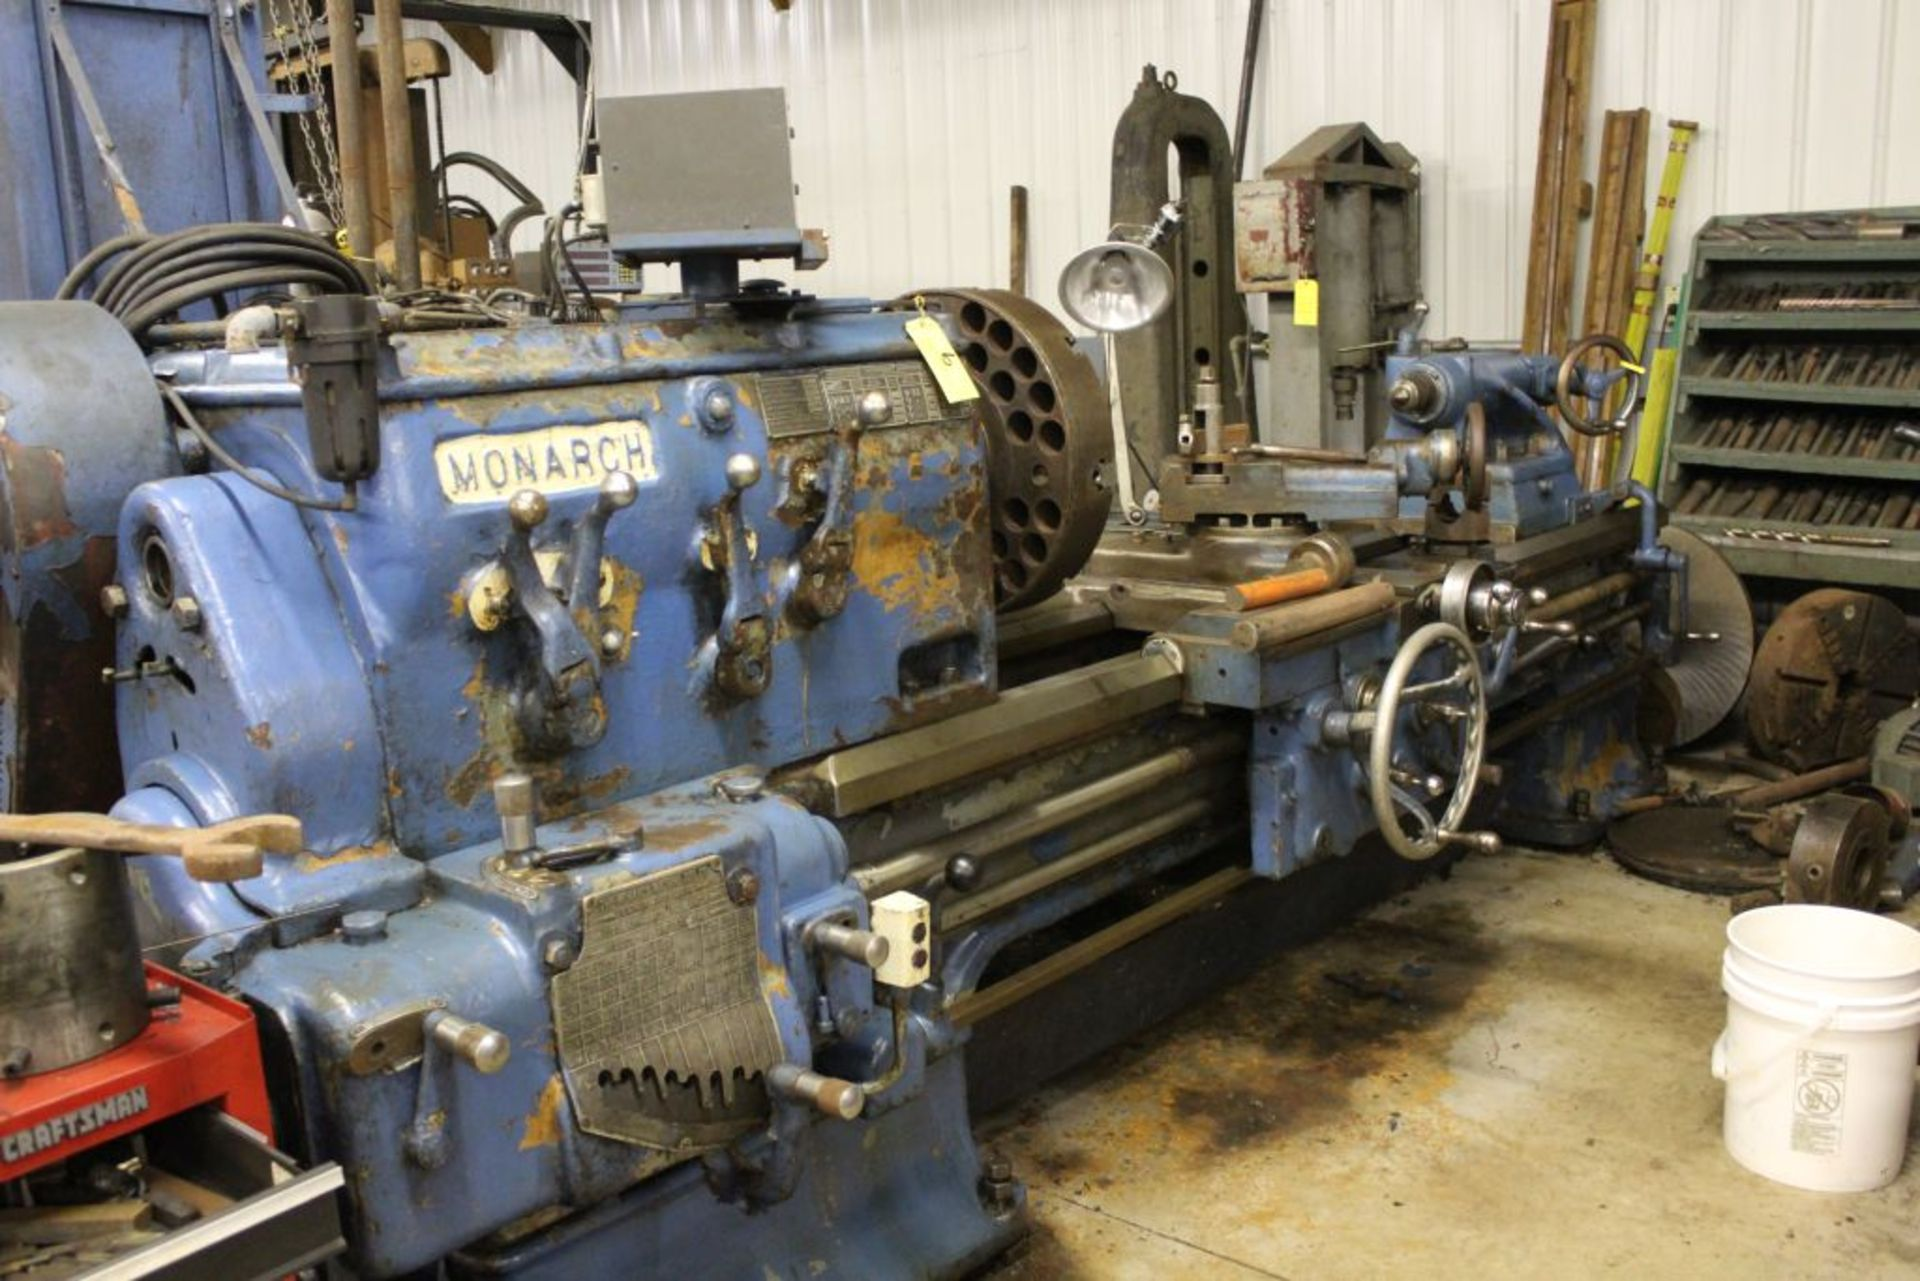 """1952 Monarch lathe, sn 35209, 20"""", 2 1/4"""" hole, 96"""" bed, 27.5 swing, 72"""" center to center, tooling - Image 2 of 12"""